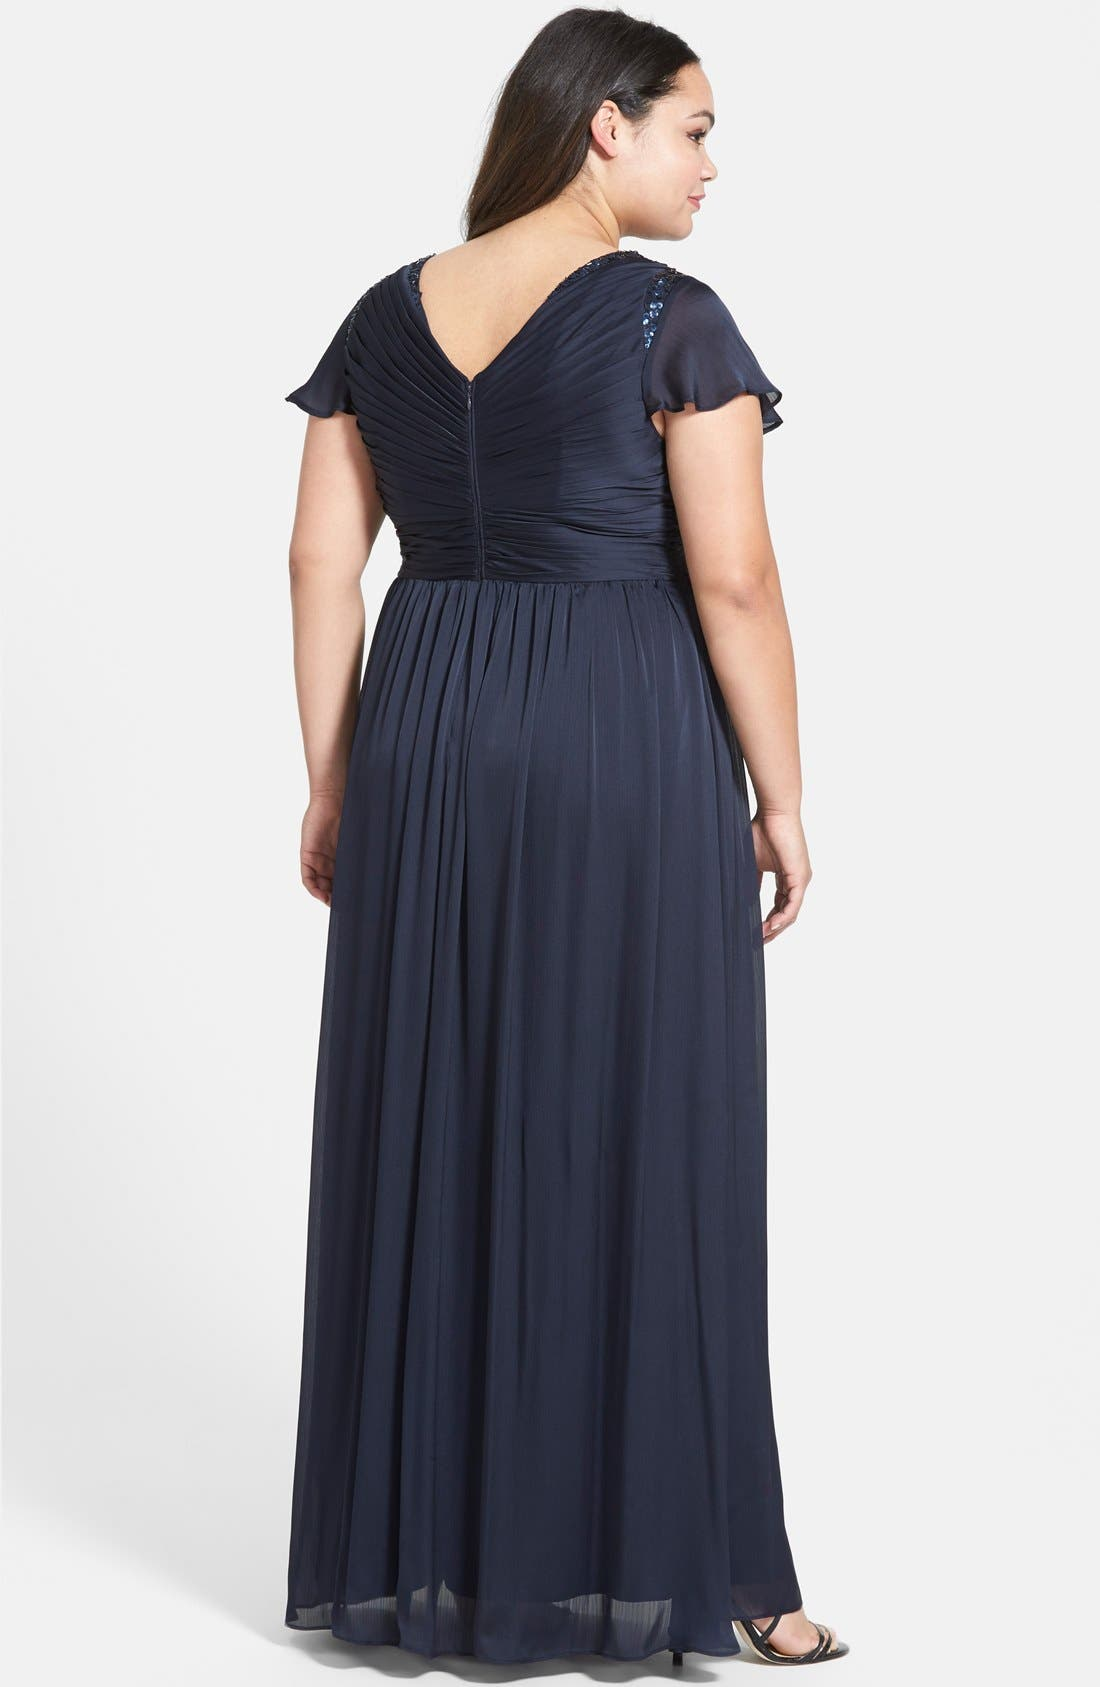 ADRIANNA PAPELL, Beaded Shoulder Pleat Chiffon Gown, Alternate thumbnail 2, color, 411